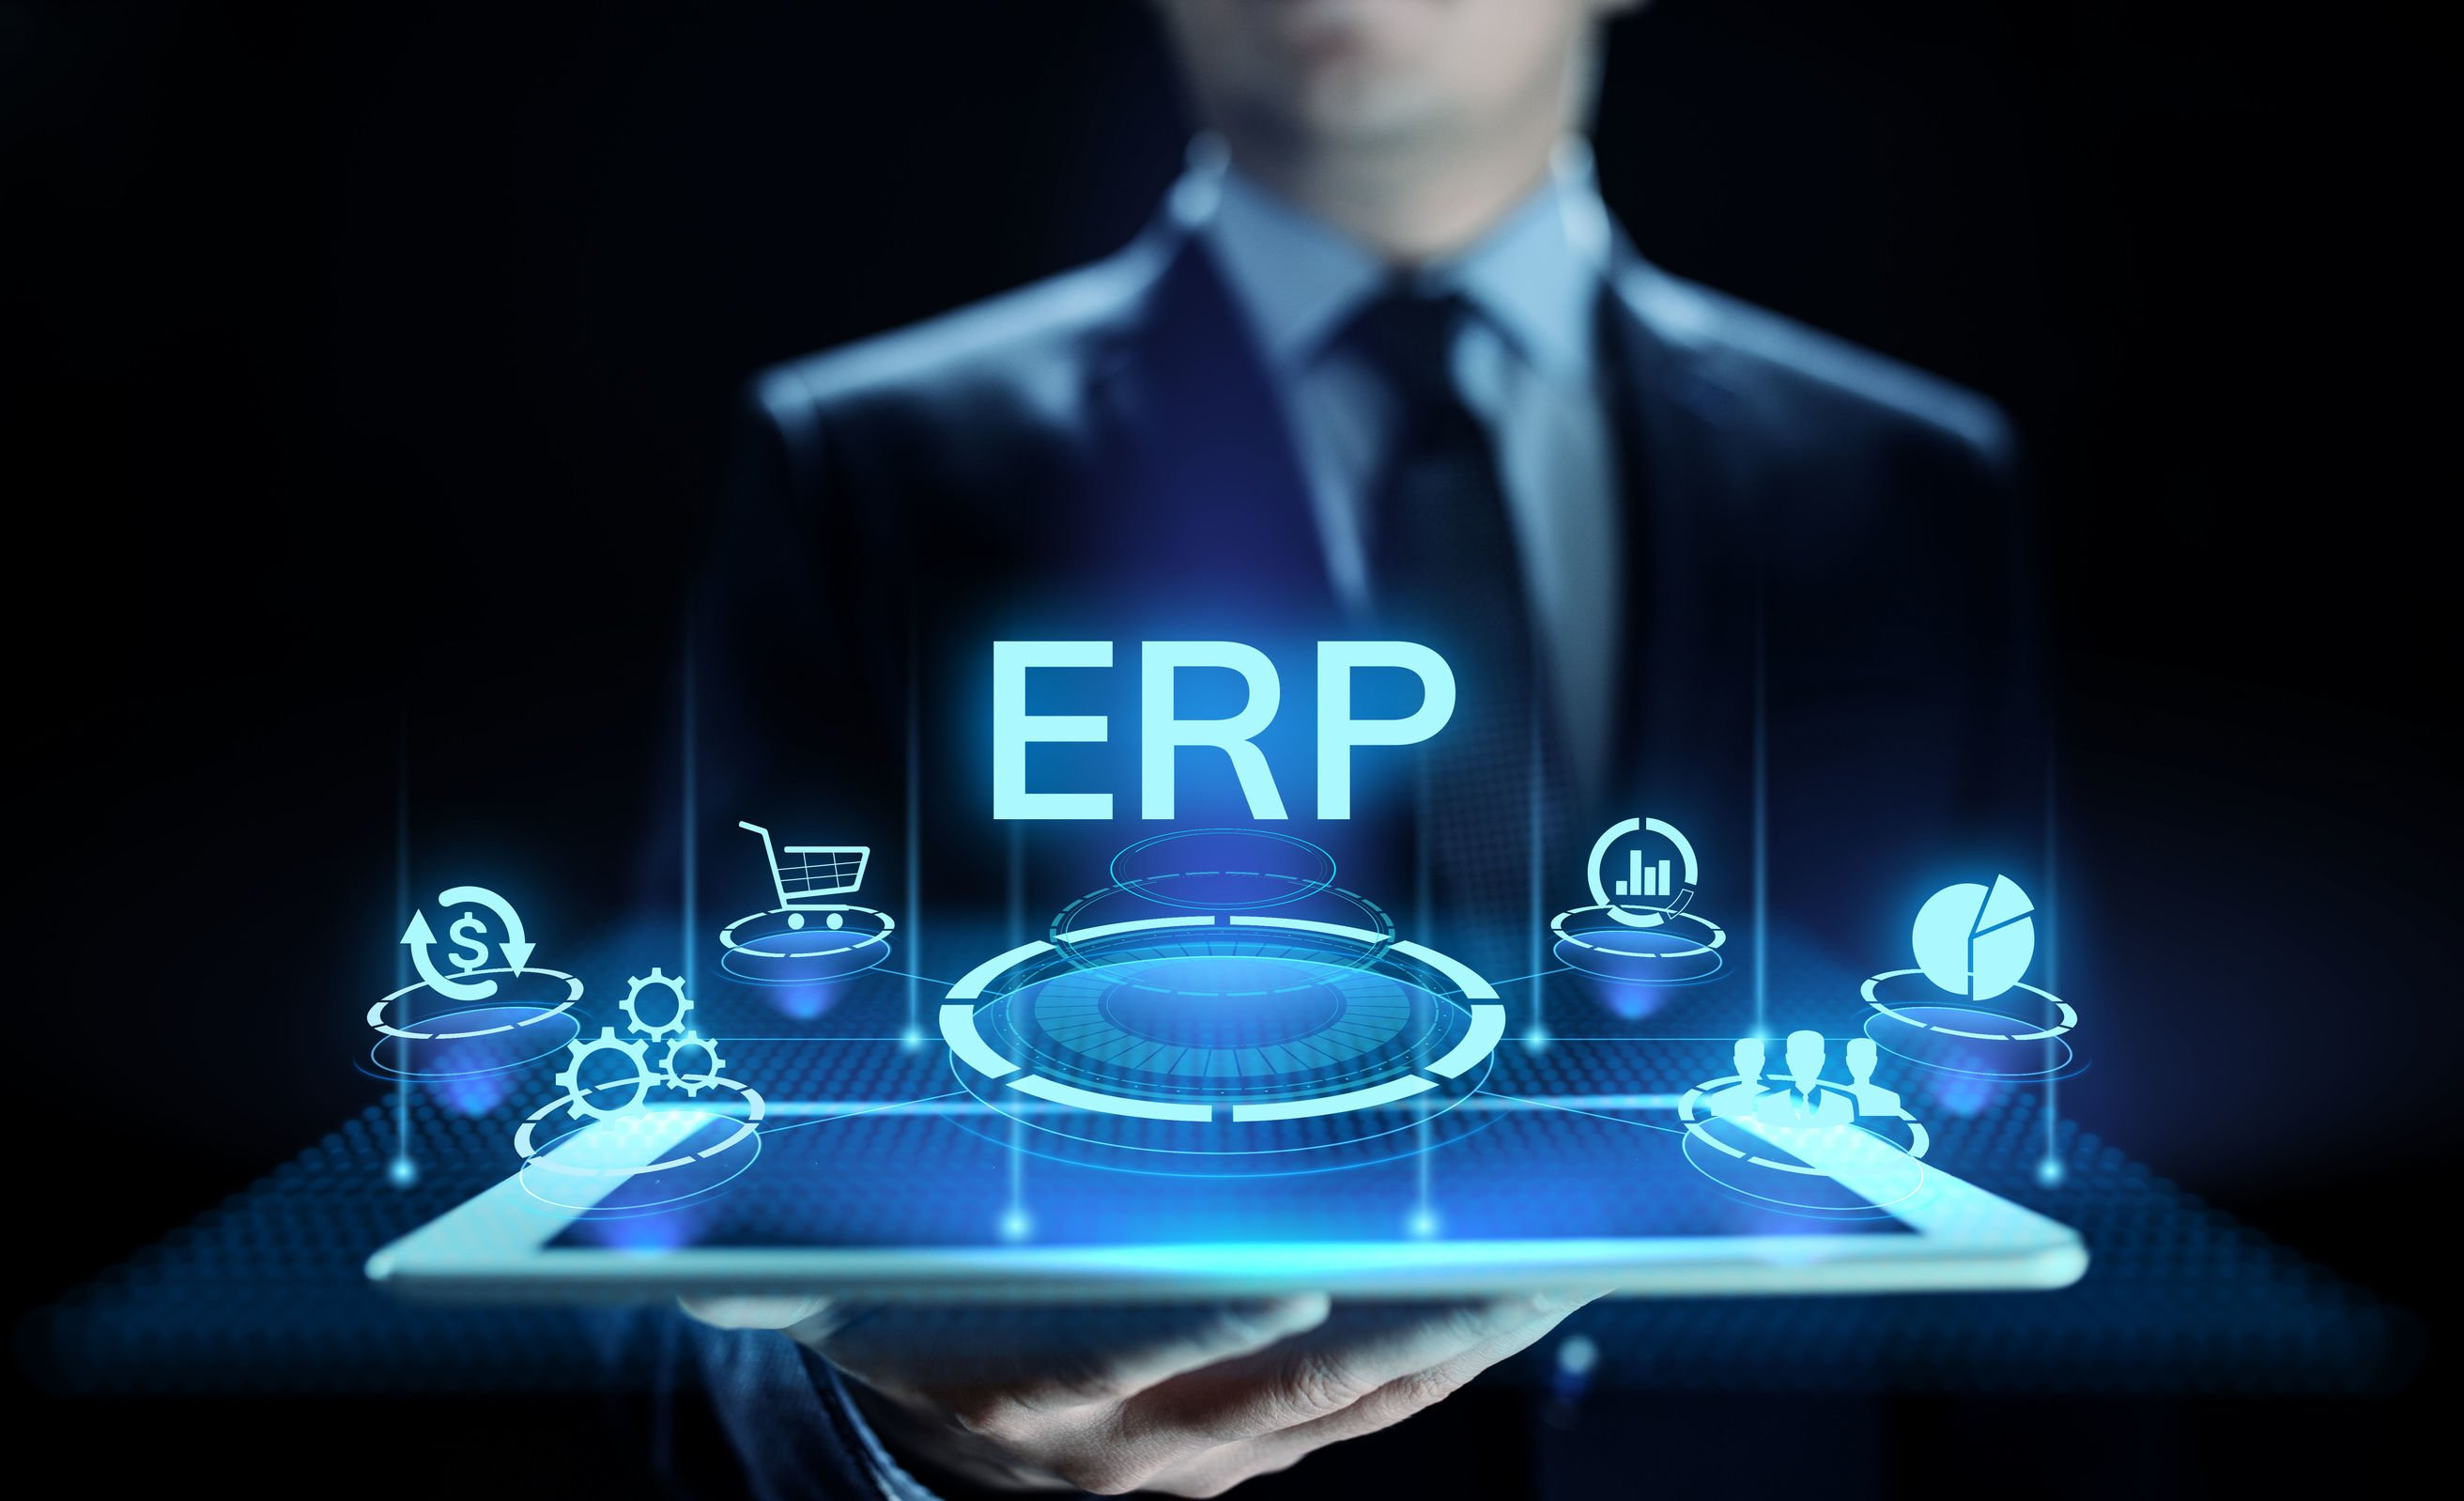 Enterprise Resource Planning: Everything You Should Know About ERP